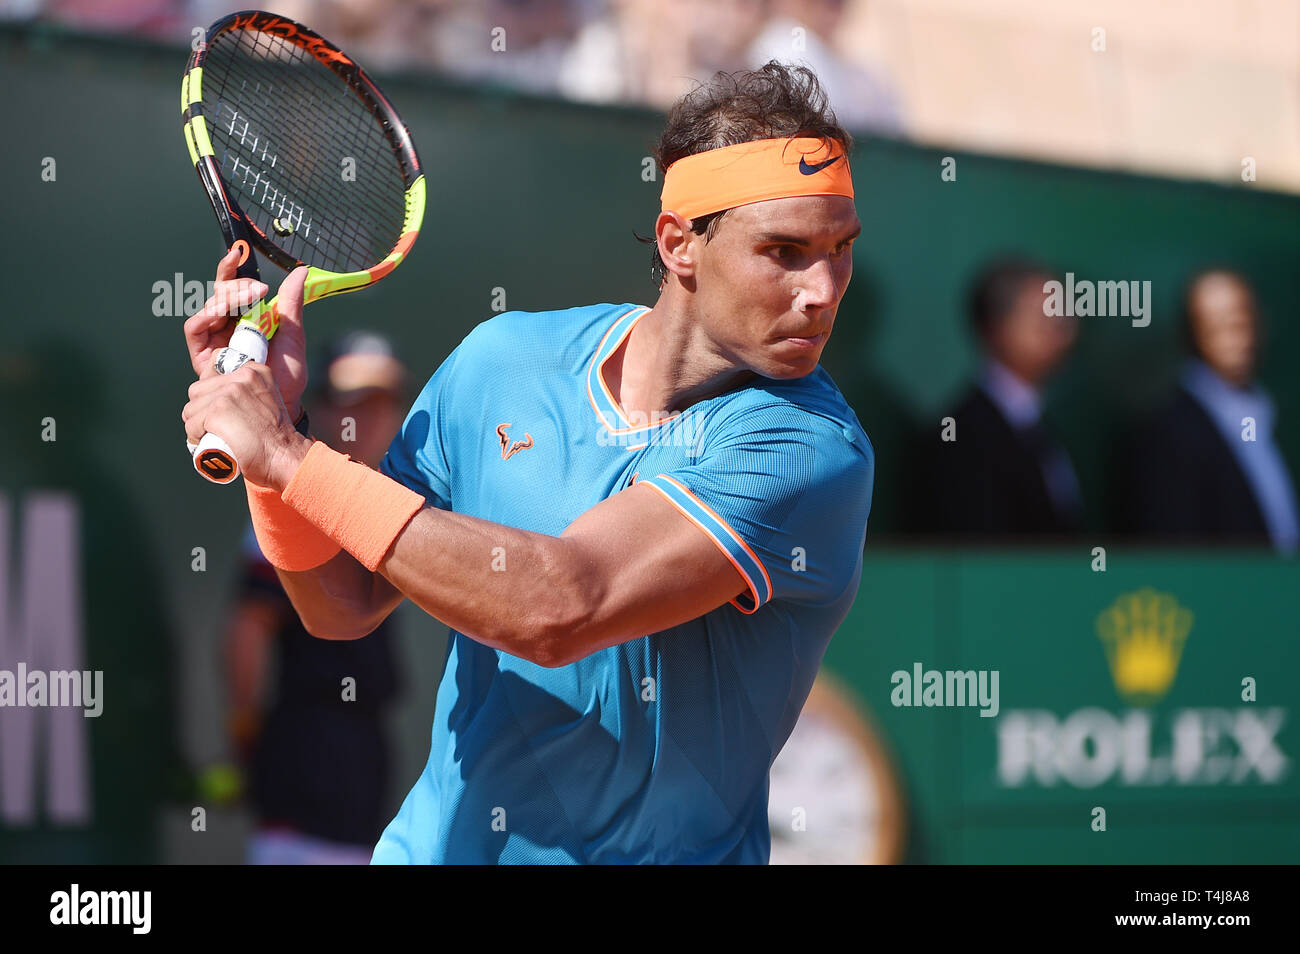 Roquebrune-Cap-Martin, France. 17th Apr, 2019. Rafael Nadal (ESP) Tennis : Men's Singles 2nd Round match during Monte Carlo Masters at Monte Carlo Country Club in Roquebrune-Cap-Martin, France . Credit: Itaru Chiba/AFLO/Alamy Live News Stock Photo